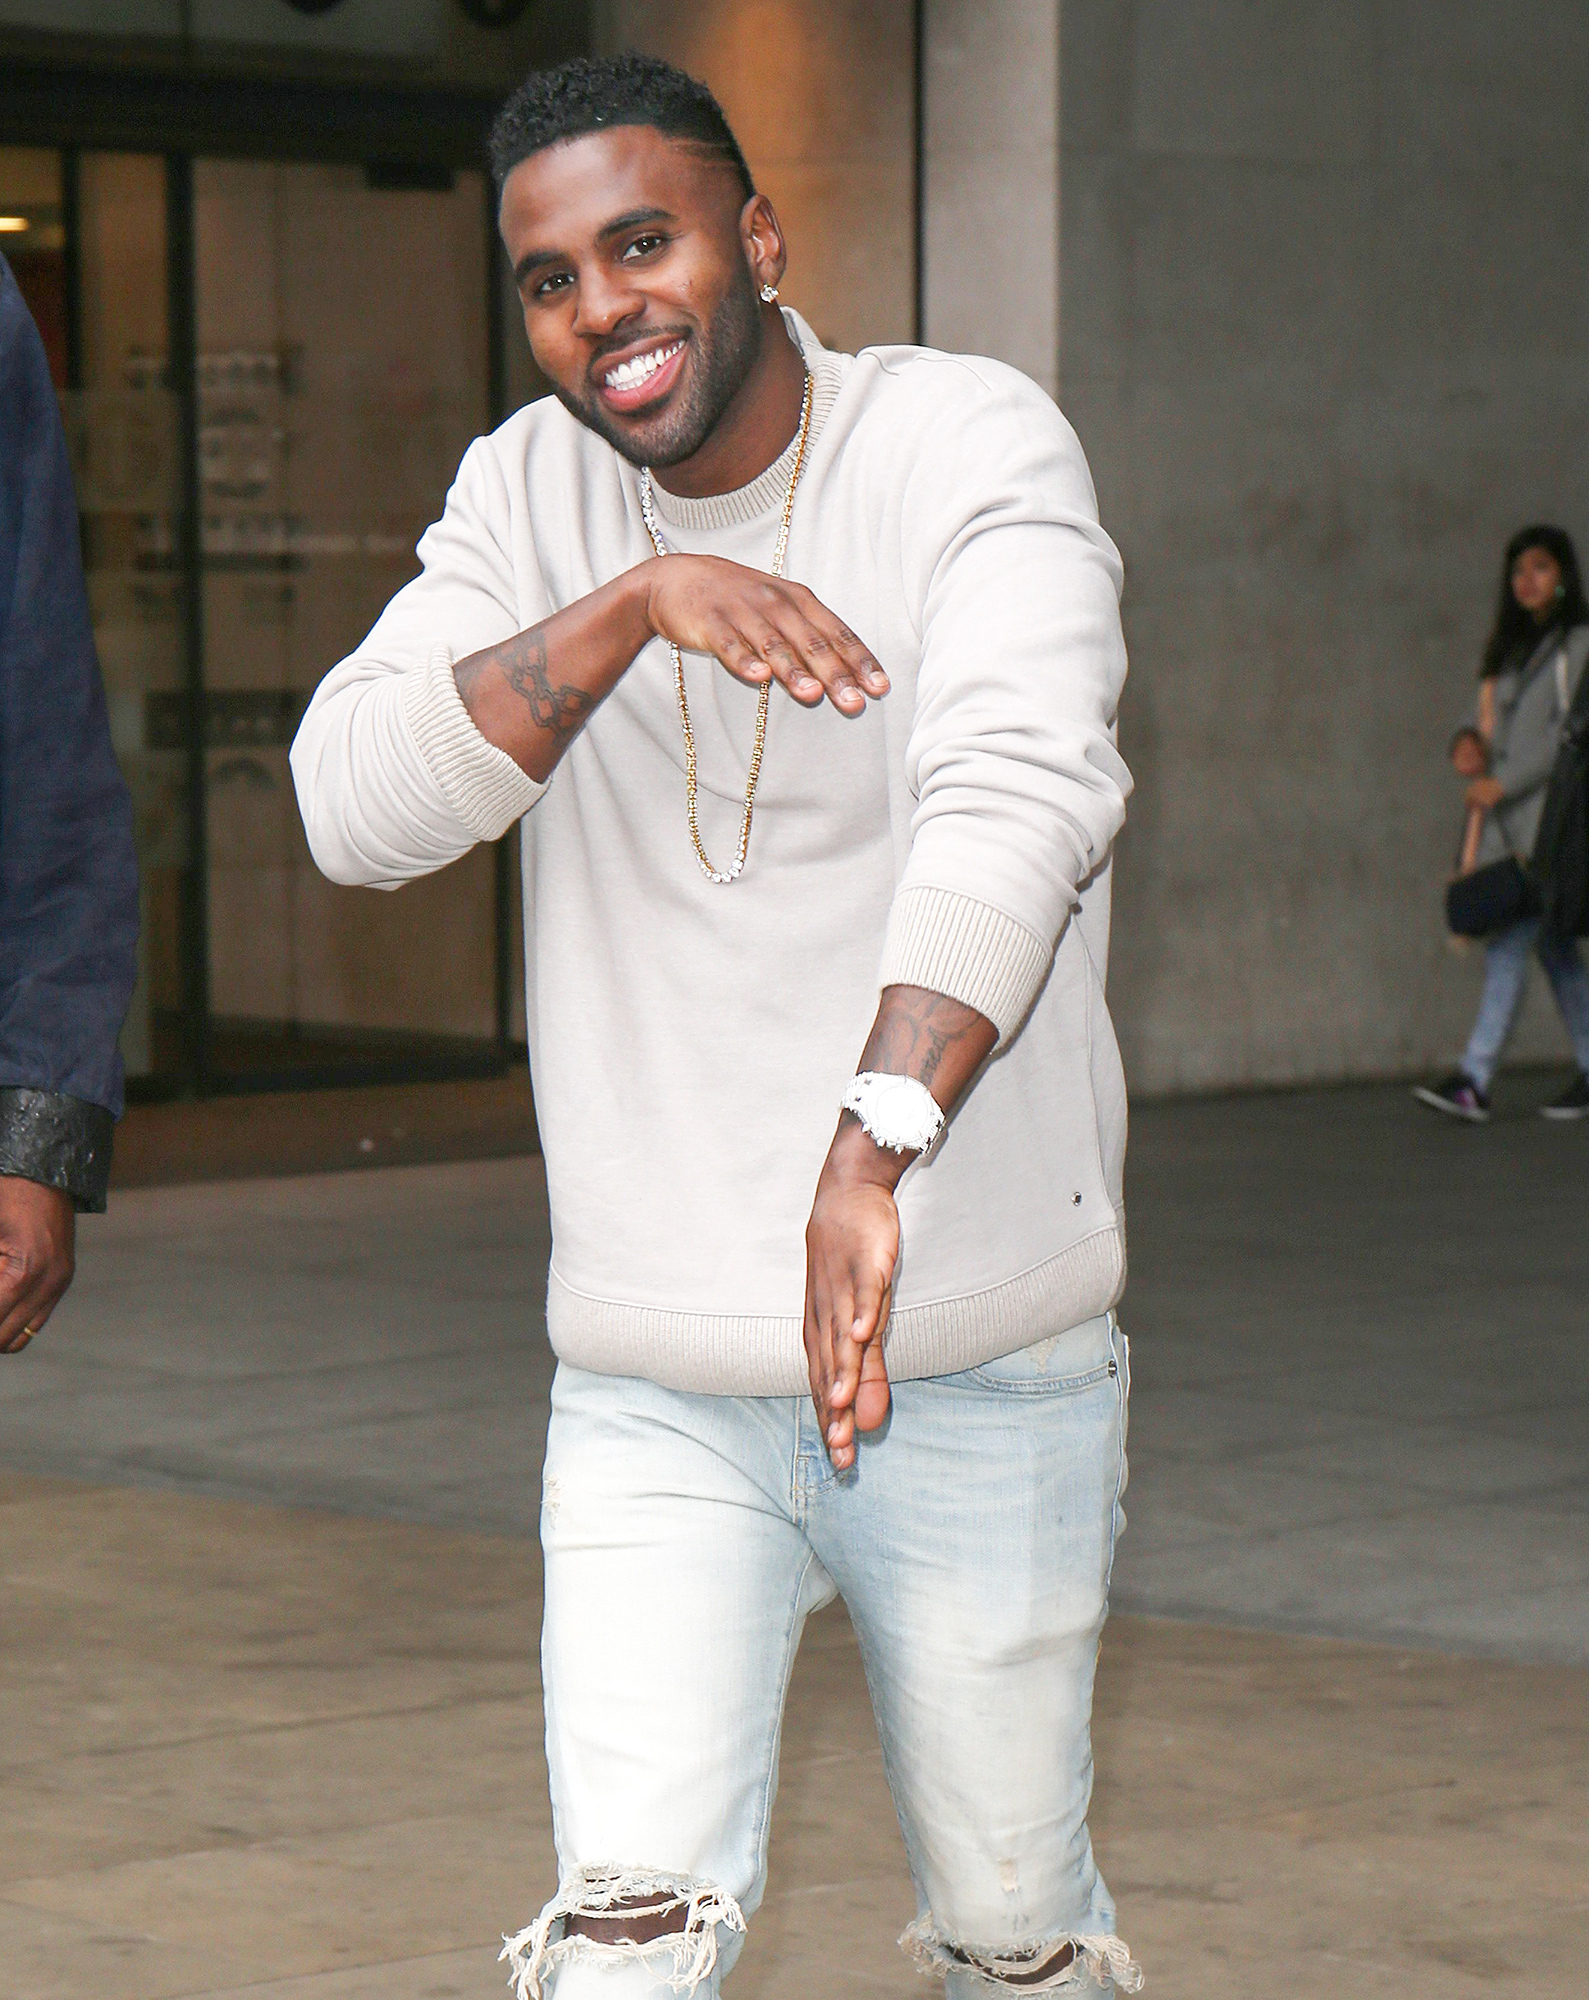 Jason Derulo out and about, London, UK - 26 Oct 2017